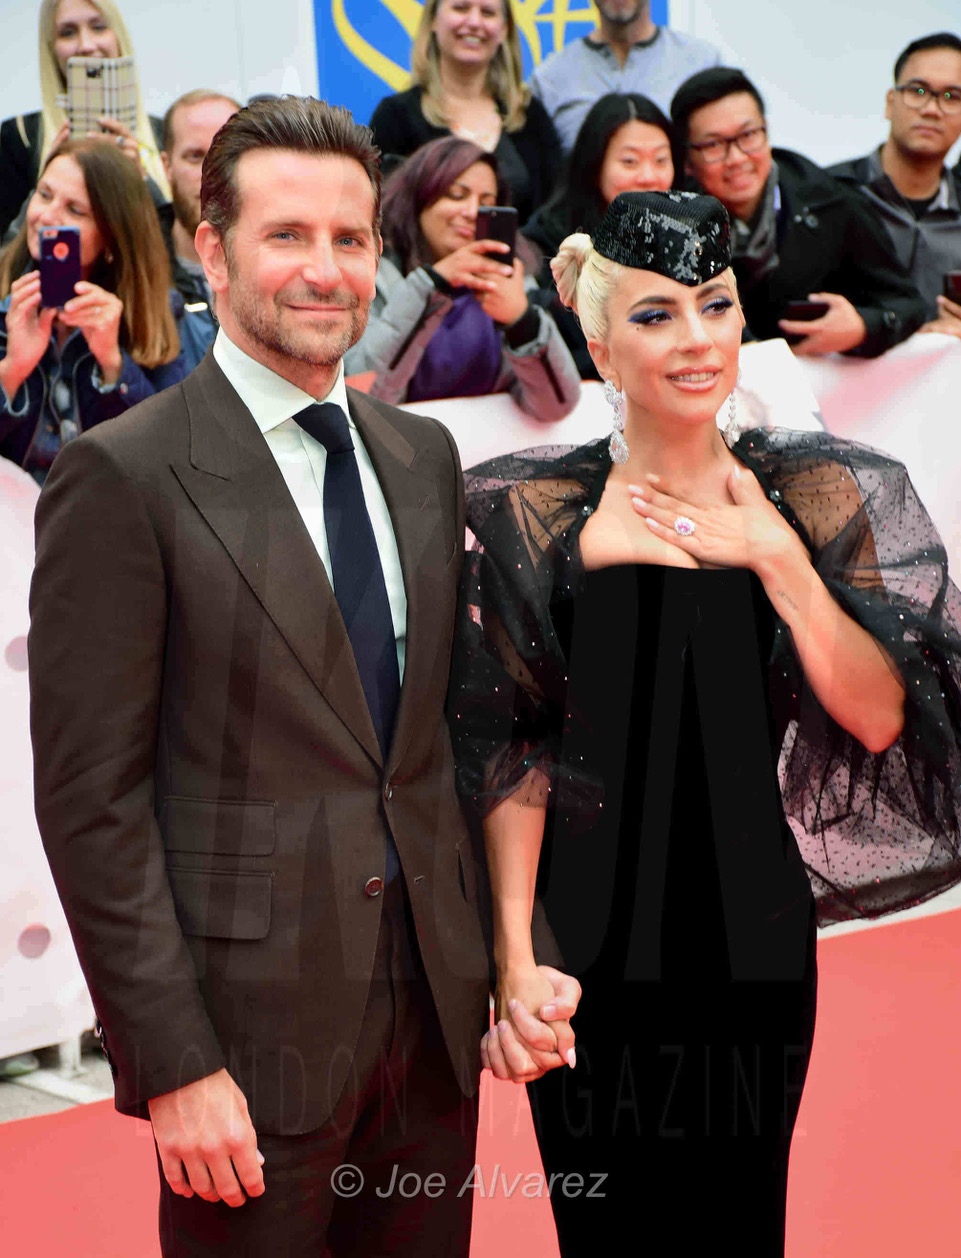 Lady Gaga Bradley Cooper at the premiere of A Star is Born